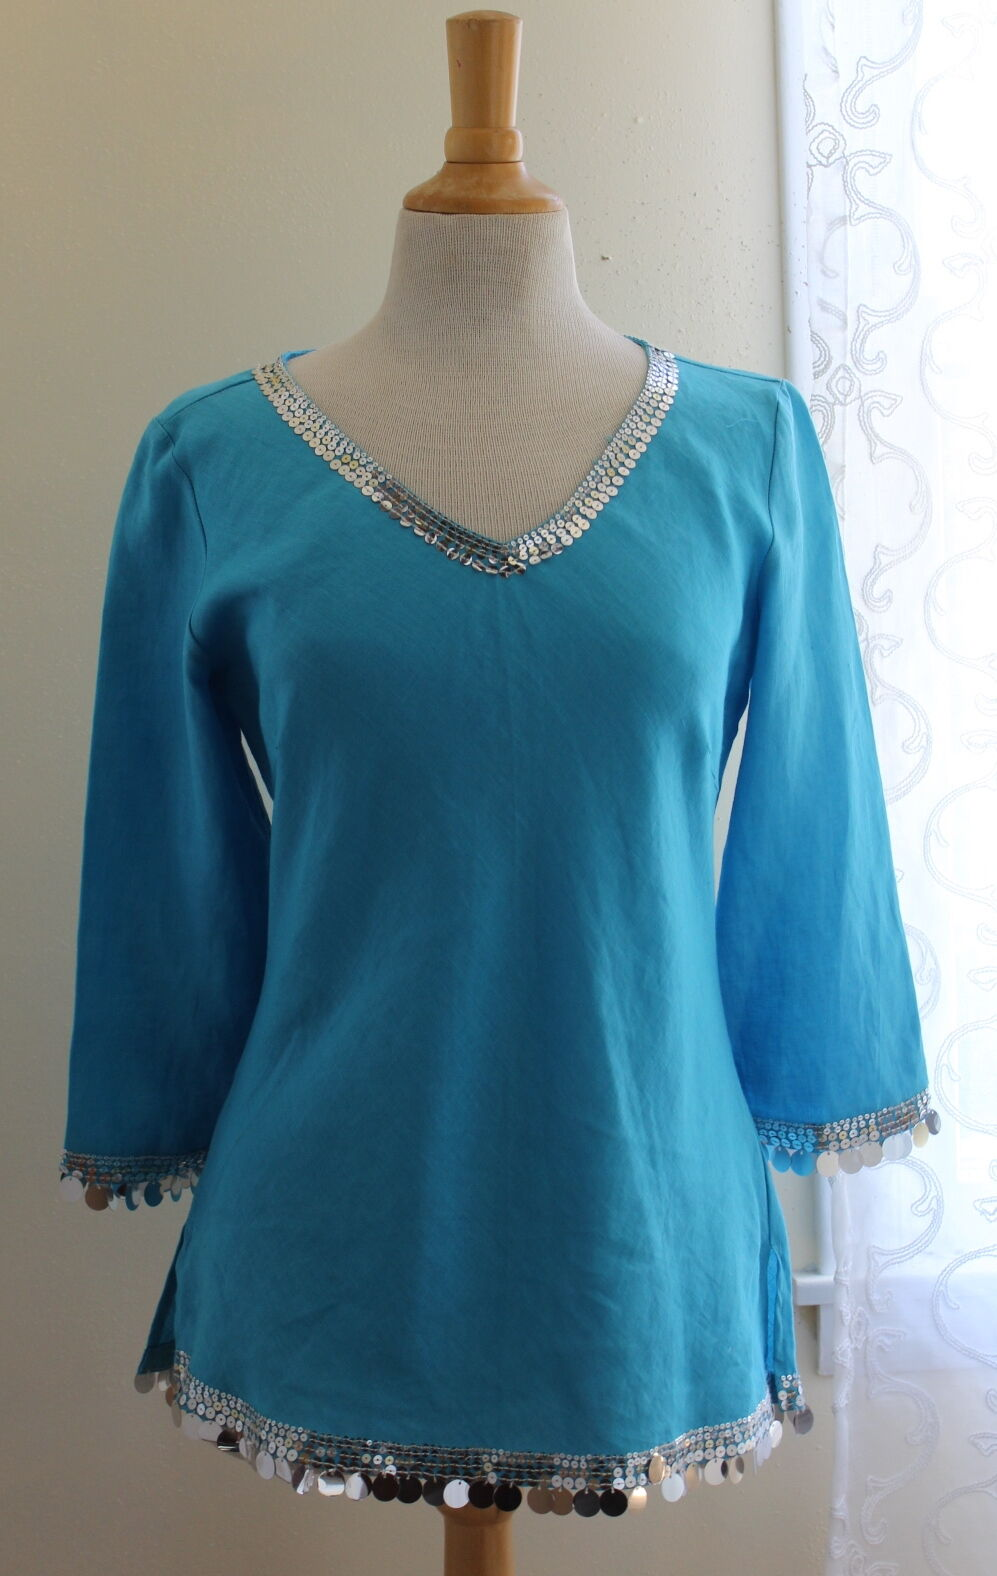 NWT Richard Malcolm - Sz 4 S -Turquoise 100 Linen Bangles Funky Sequin Tunic Top